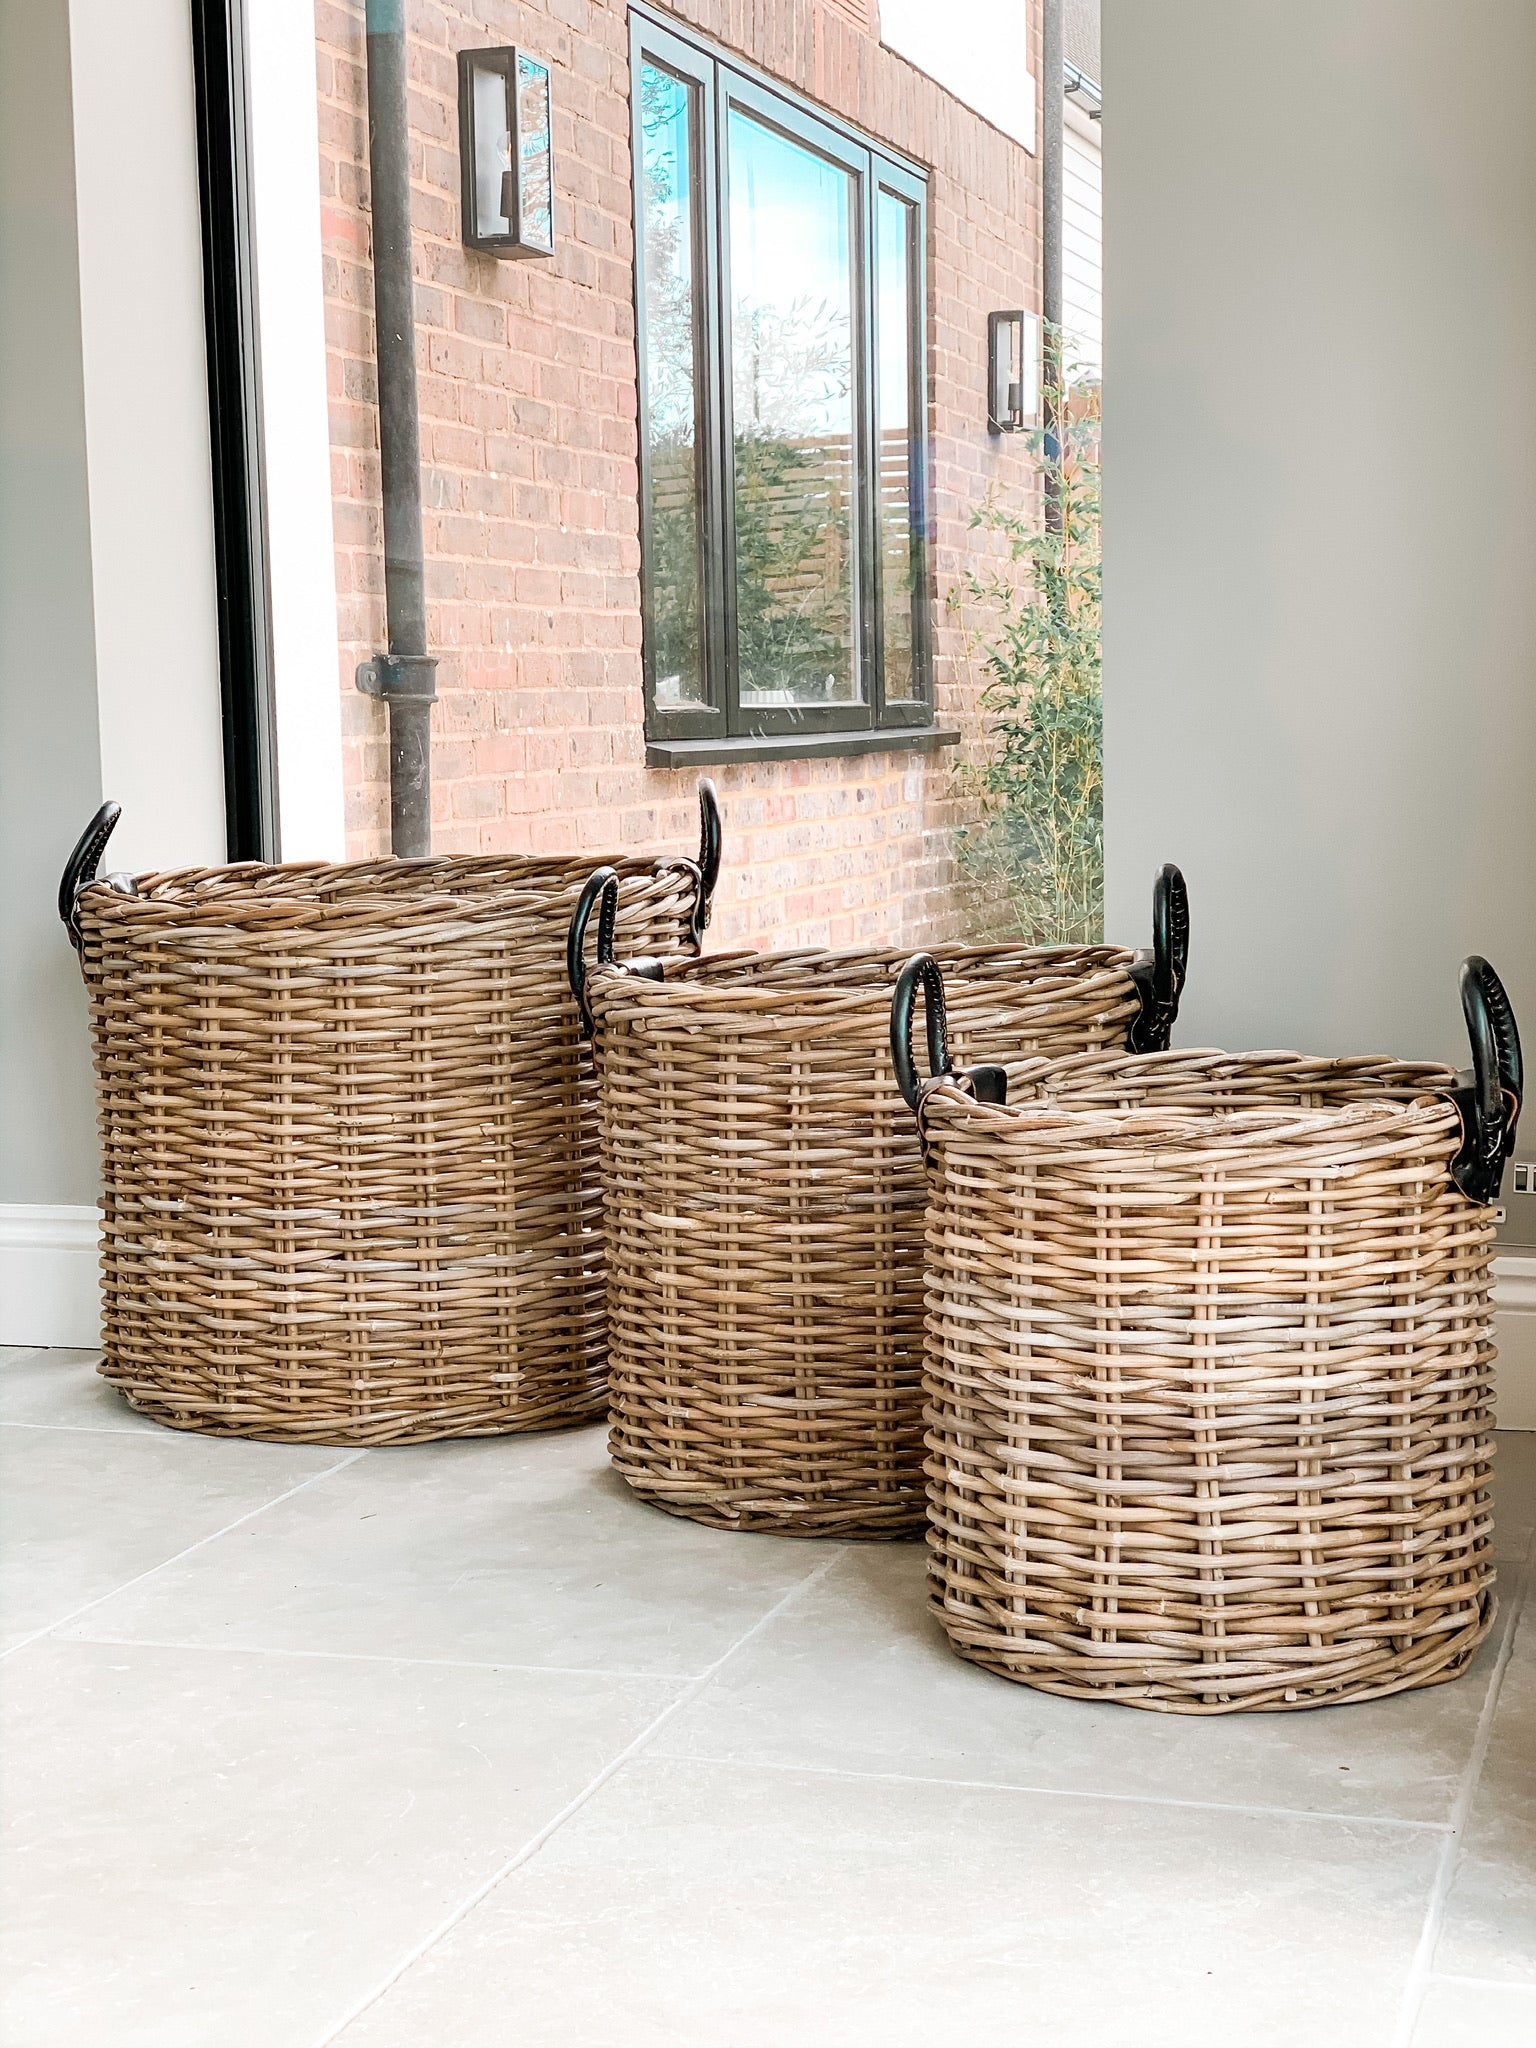 Aylesbury Set of Rattan Baskets